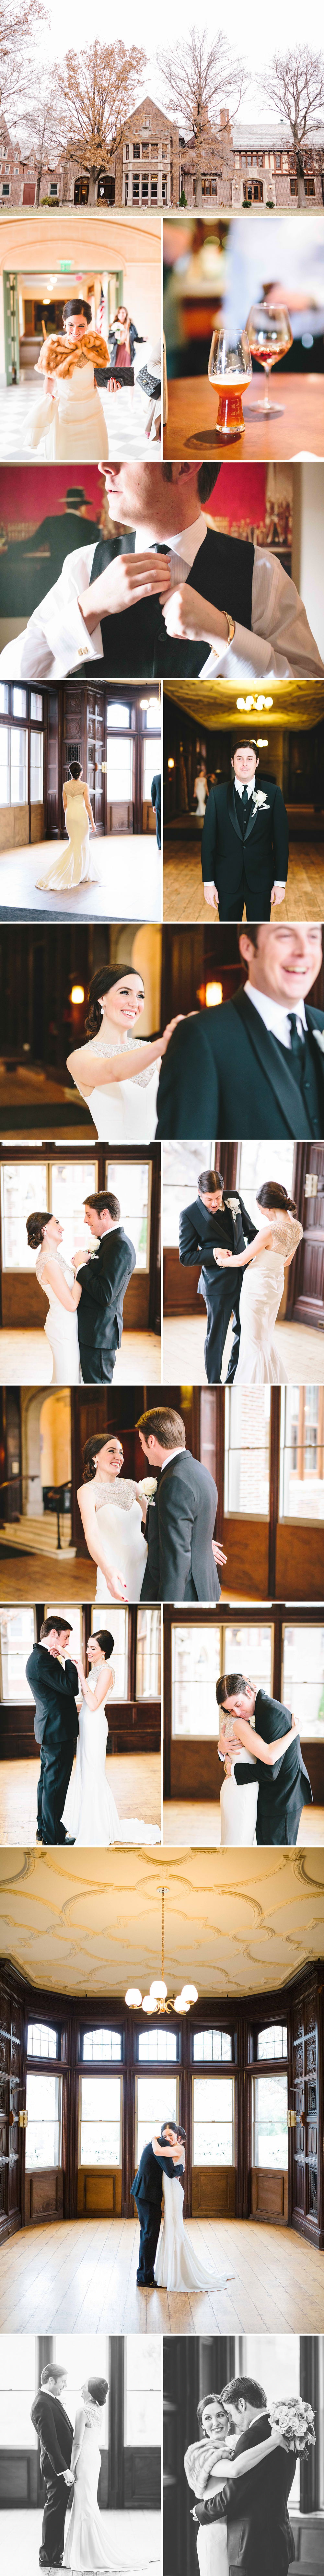 chicago-fine-art-wedding-photography-fulton2